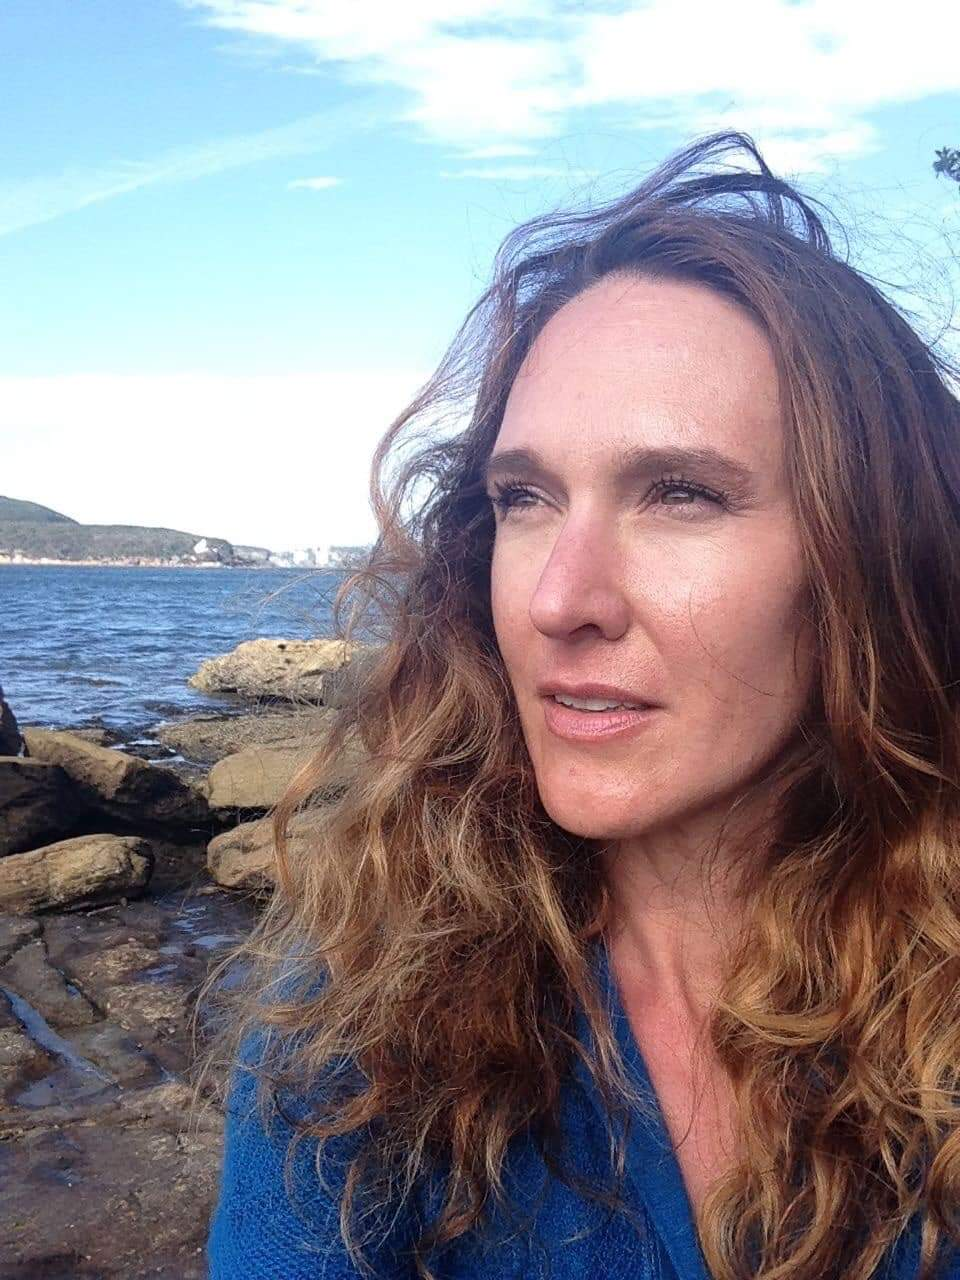 Meet Liz Rutledge, the founder of Sustainable 3. Liz works with Mindful Wellness and Energy Sustainability.